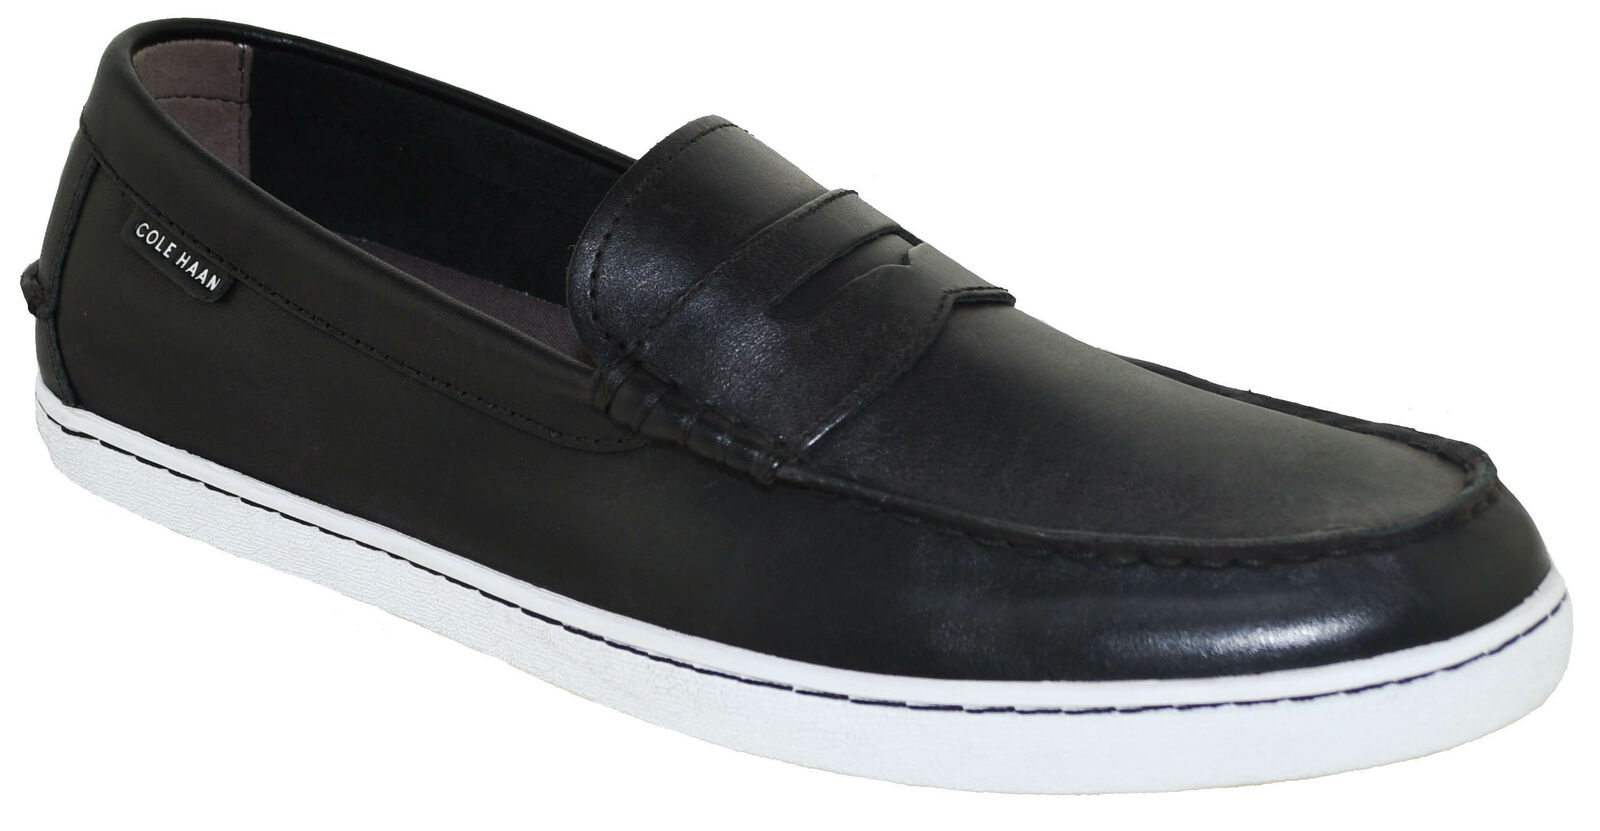 Cole Haan Men/'s Pinch Weekender Leather Penny Loafer Fully padded sockliner